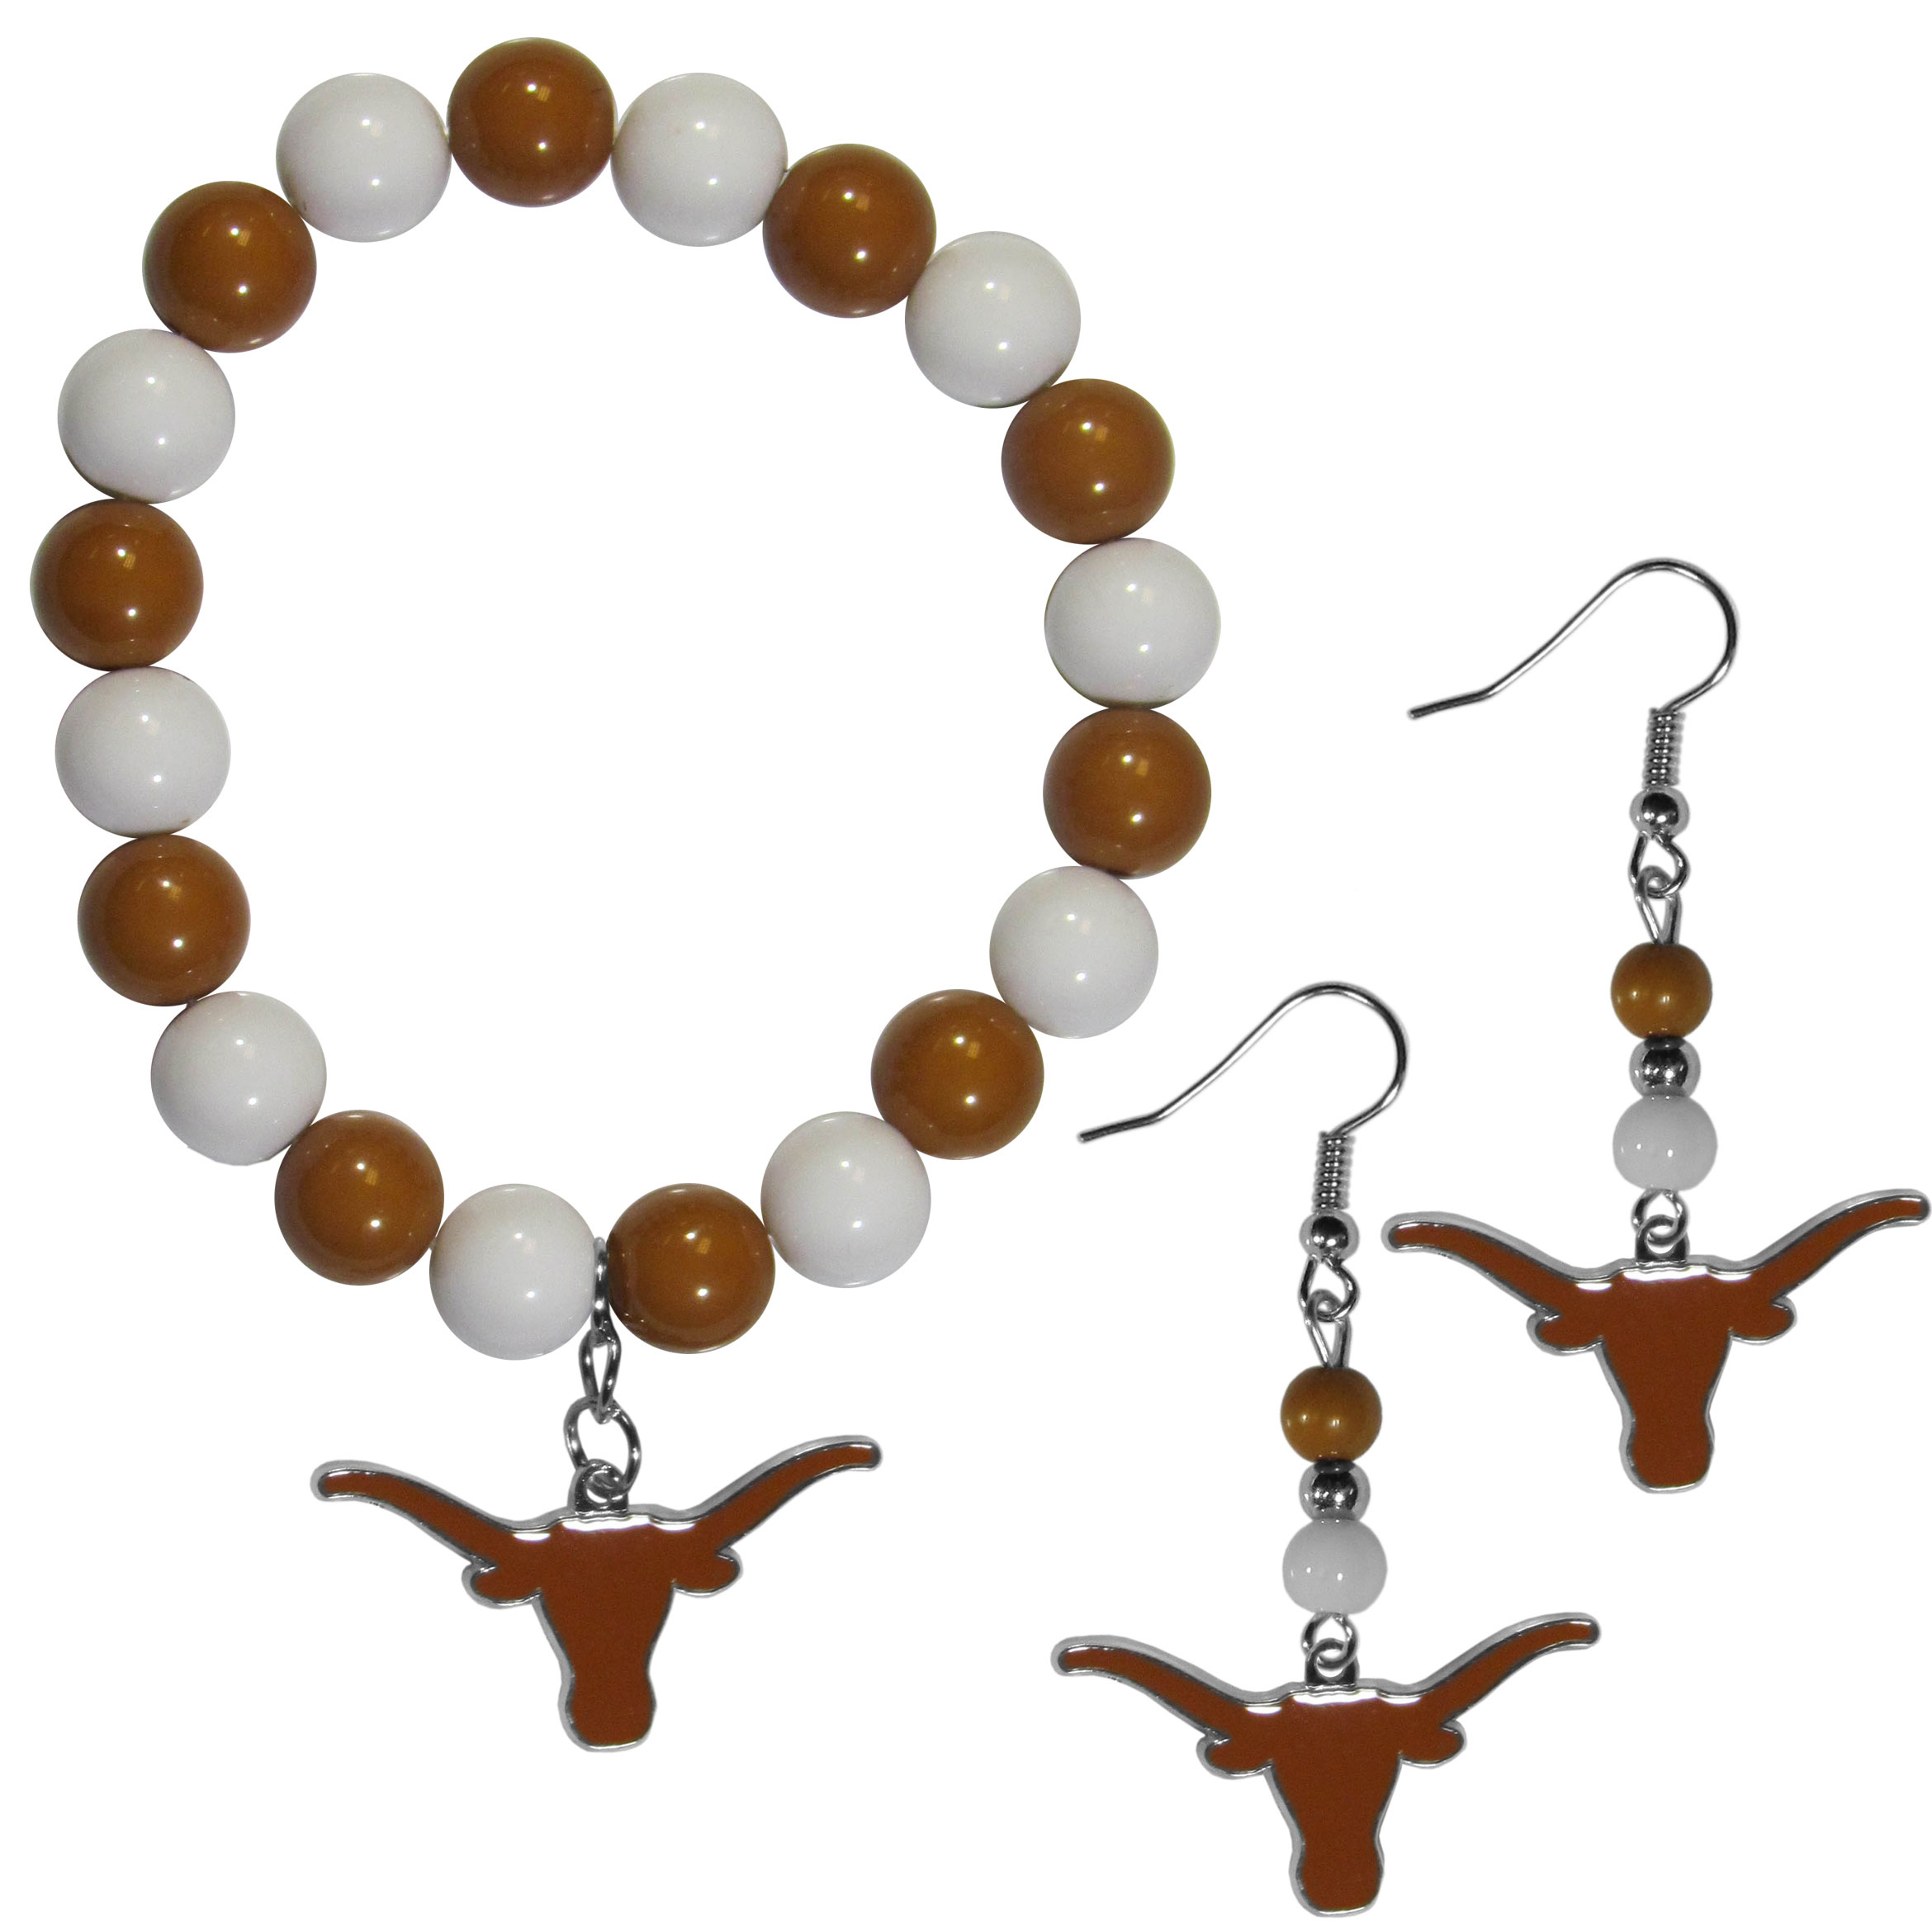 Texas Longhorns Fan Bead Earrings and Bracelet Set - This fun and colorful Texas Longhorns fan bead jewelry set is fun and casual with eye-catching beads in bright team colors. The fashionable dangle earrings feature a team colored beads that drop down to a carved and enameled charm. The stretch bracelet has larger matching beads that make a striking statement and have a matching team charm. These sassy yet sporty jewelry pieces make a perfect gift for any female fan. Spice up your game-day outfit with these fun colorful earrings and bracelet that are also cute enough for any day.